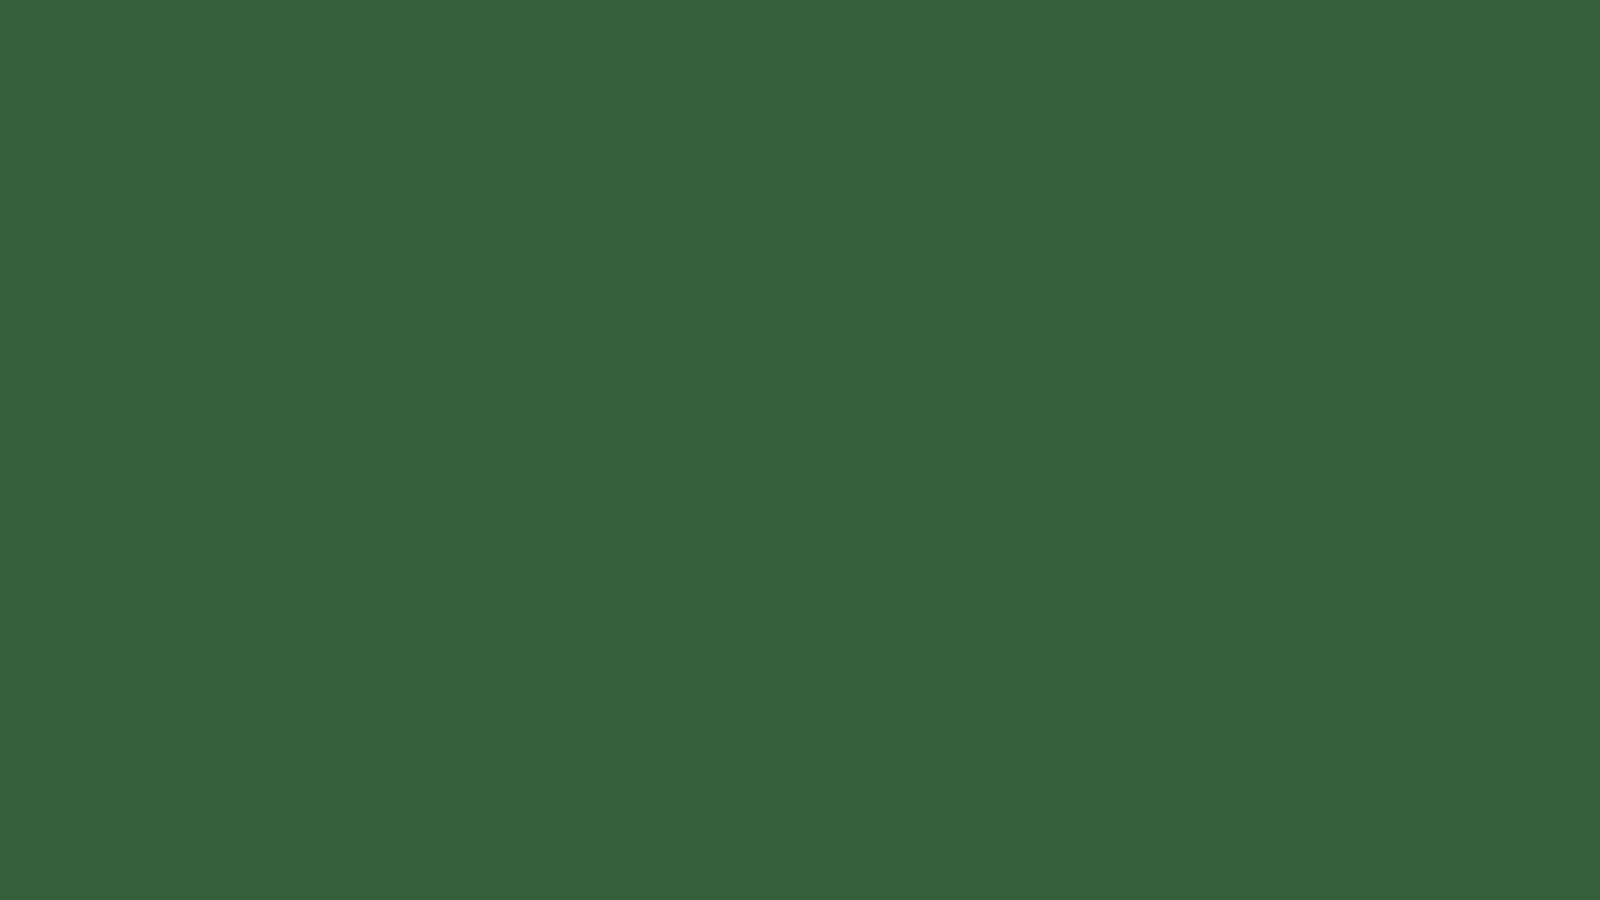 1600x900 Hunter Green Solid Color Background